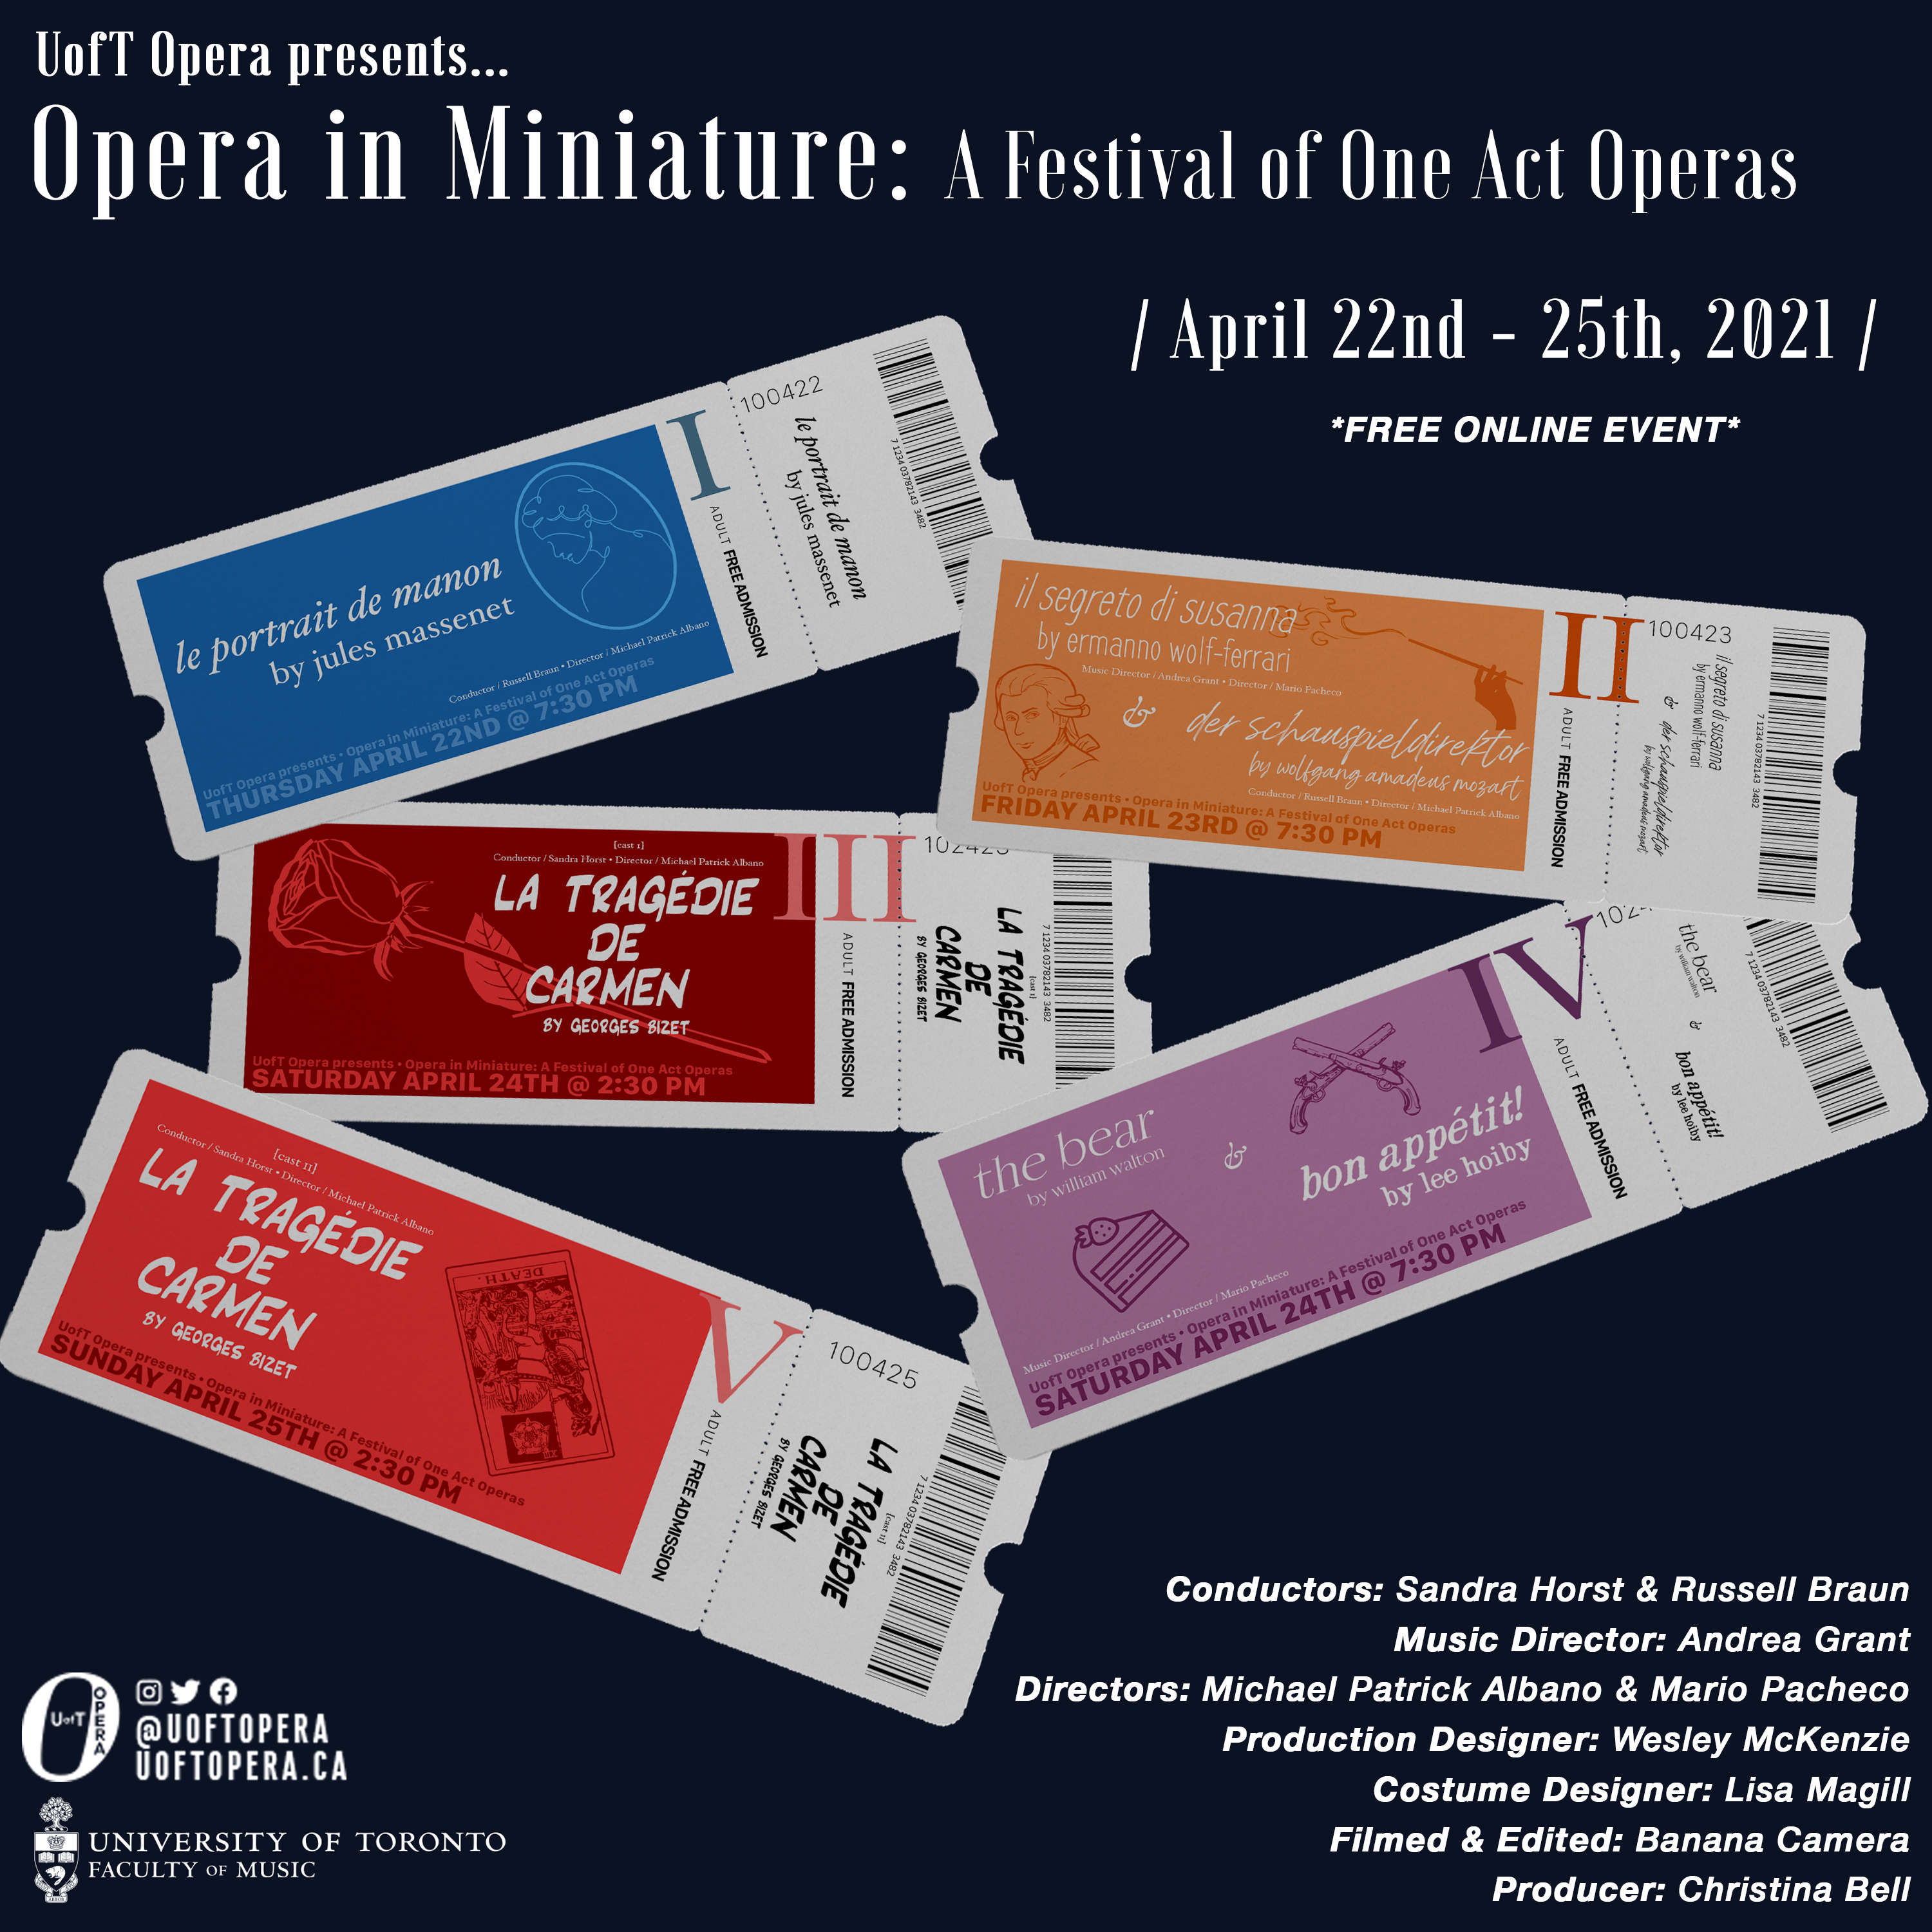 U of T Opera presents Opera in Miniature: An Evening of One Act Operas (online)